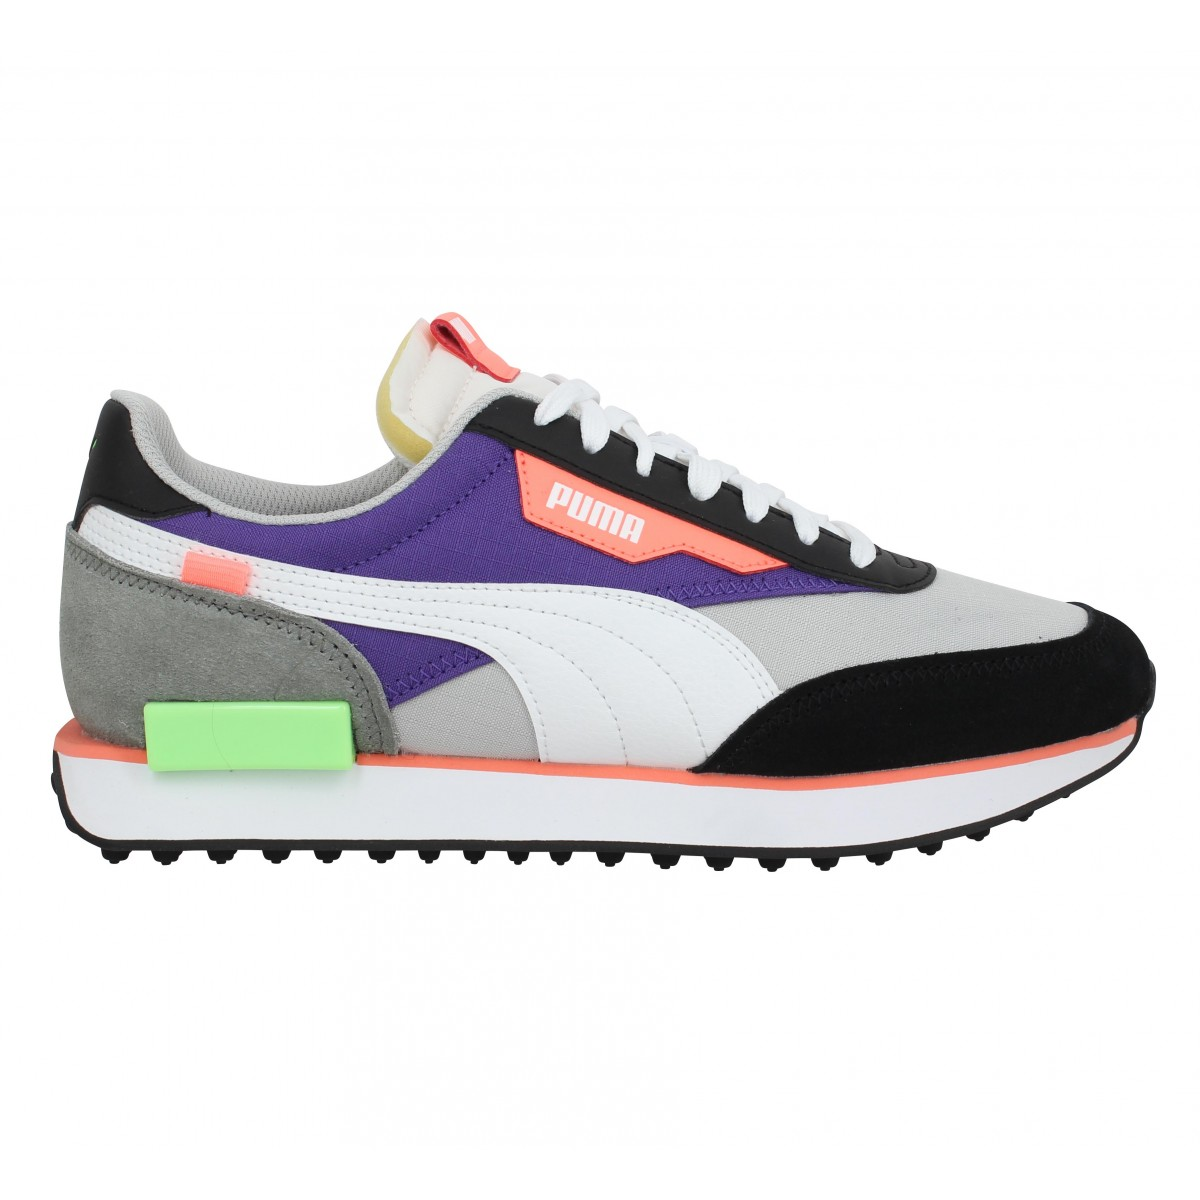 PUMA Future Rider Play On velours toile Homme Gris Violet